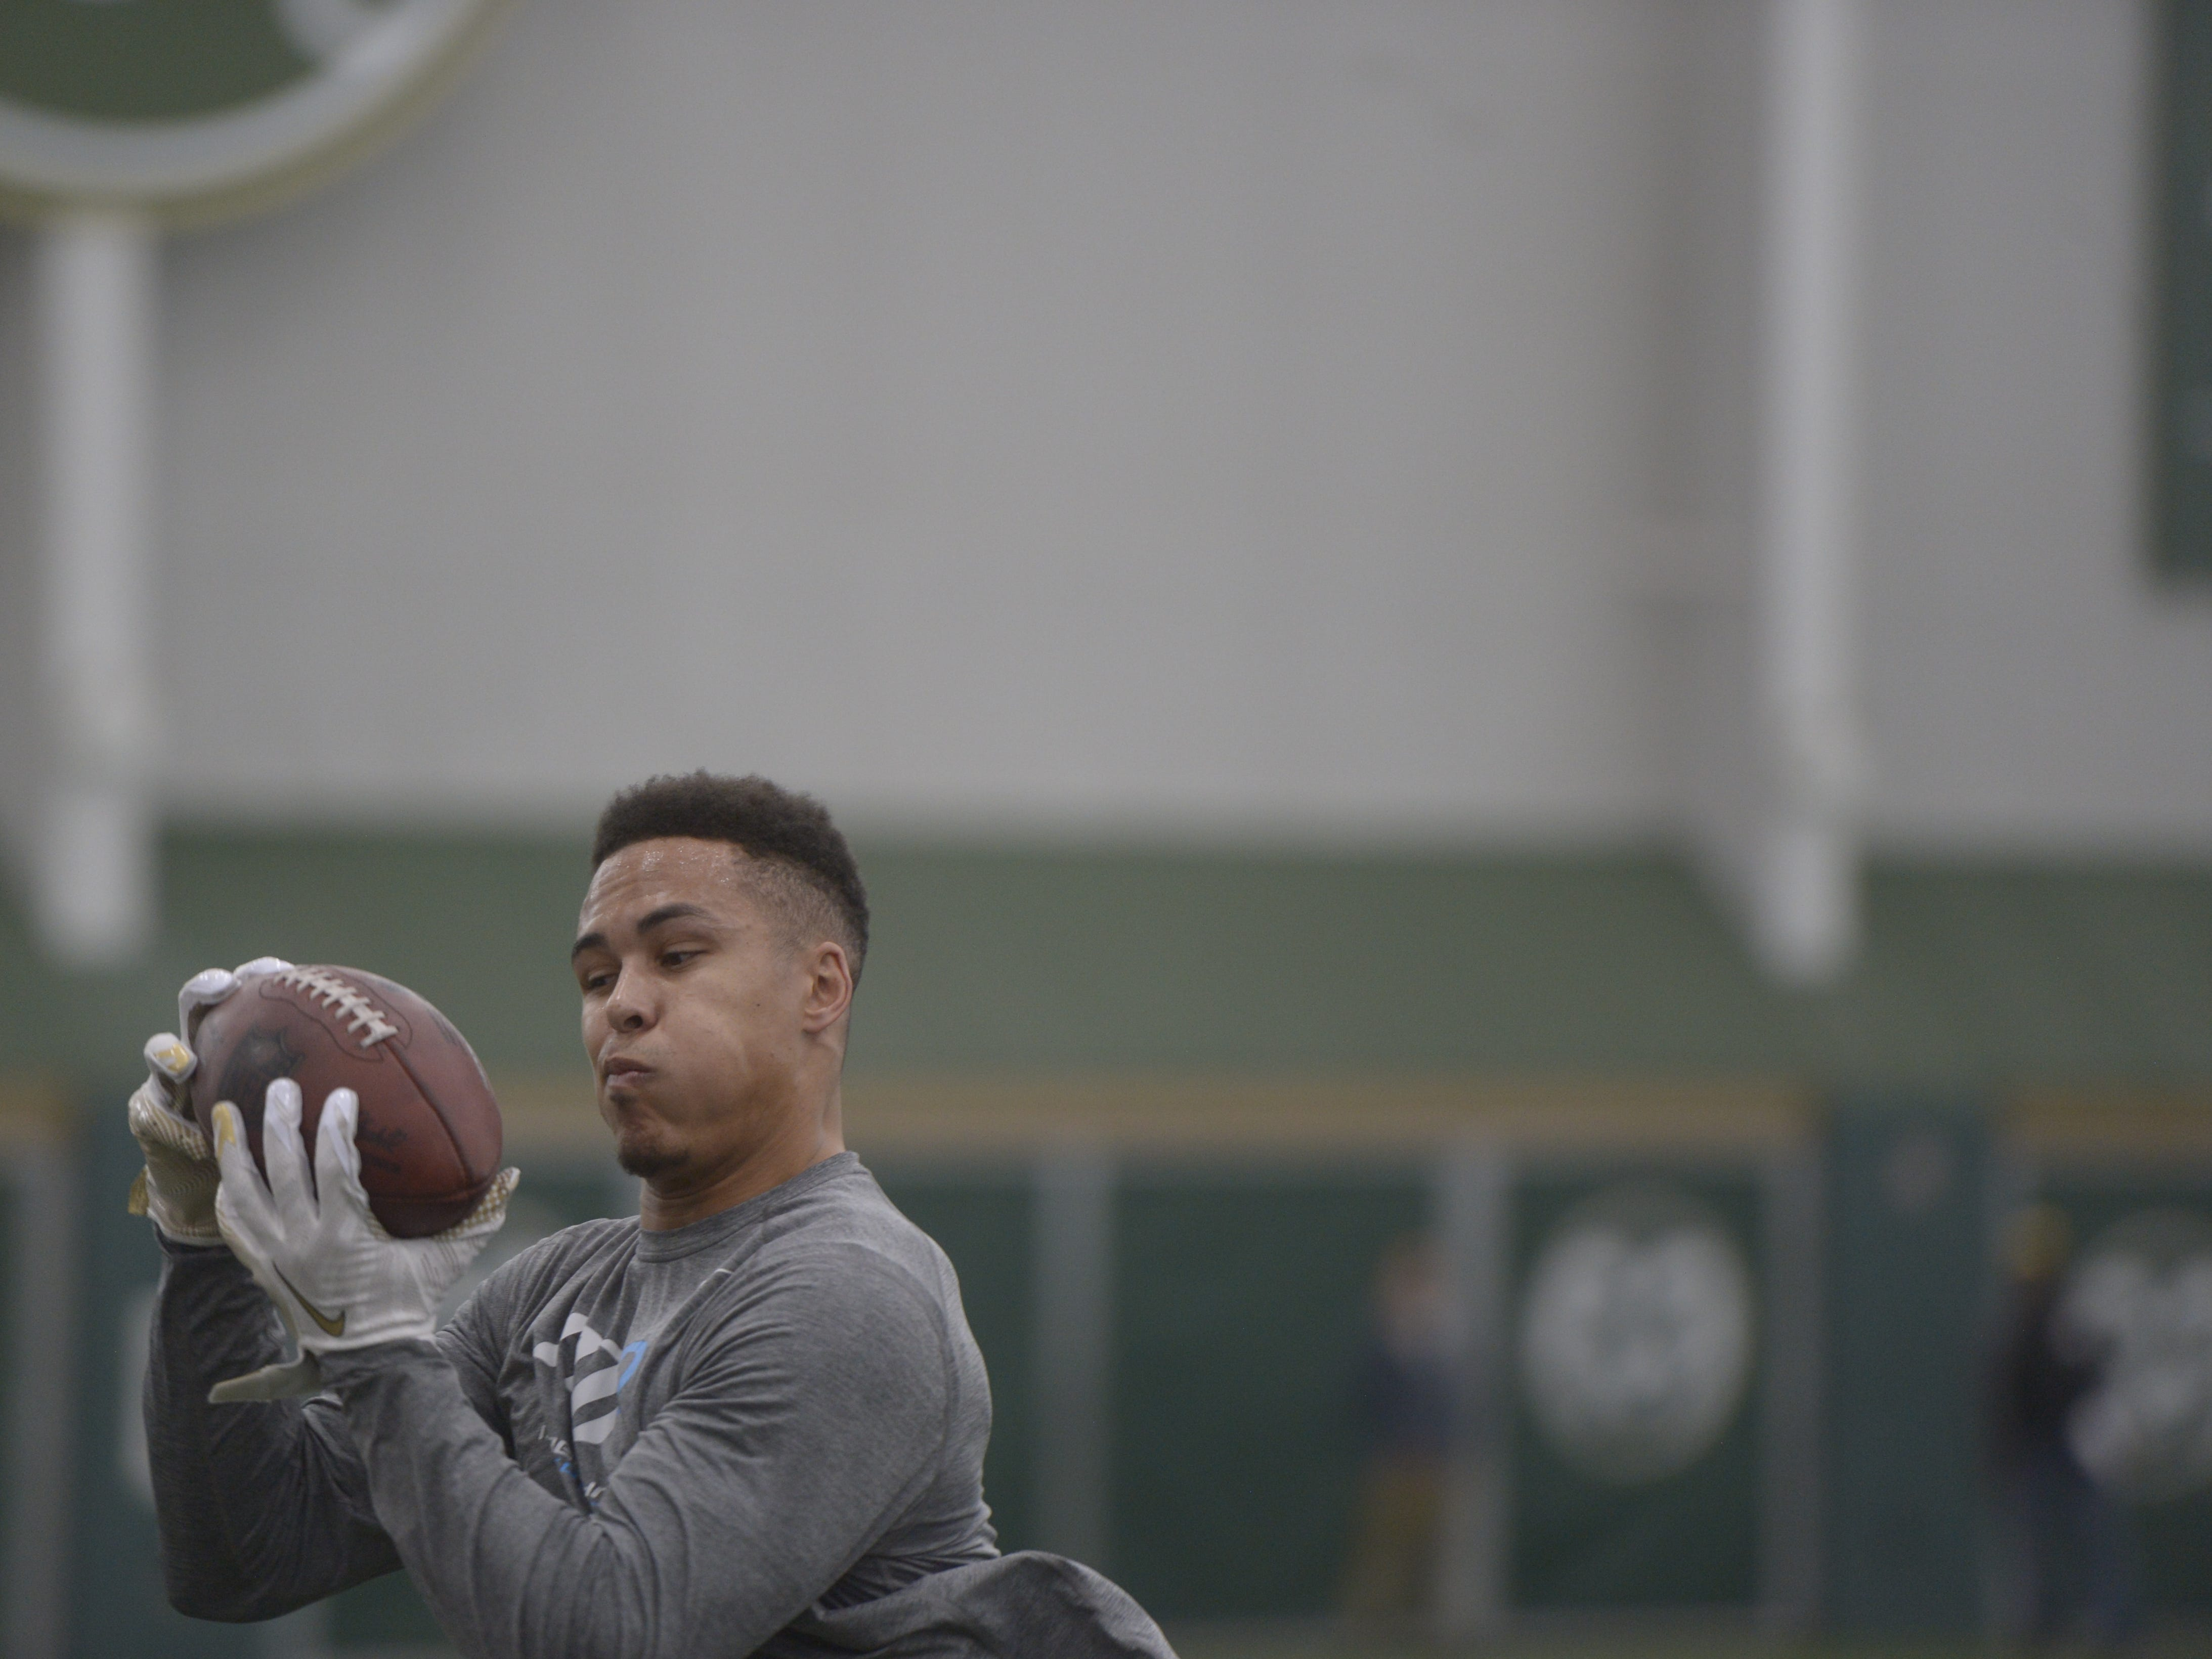 Former Colorado State receiver Bisi Johnson catches a pass at CSU's pro day in the Indoor Practice Facility on Wednesday, March 6, 2019.